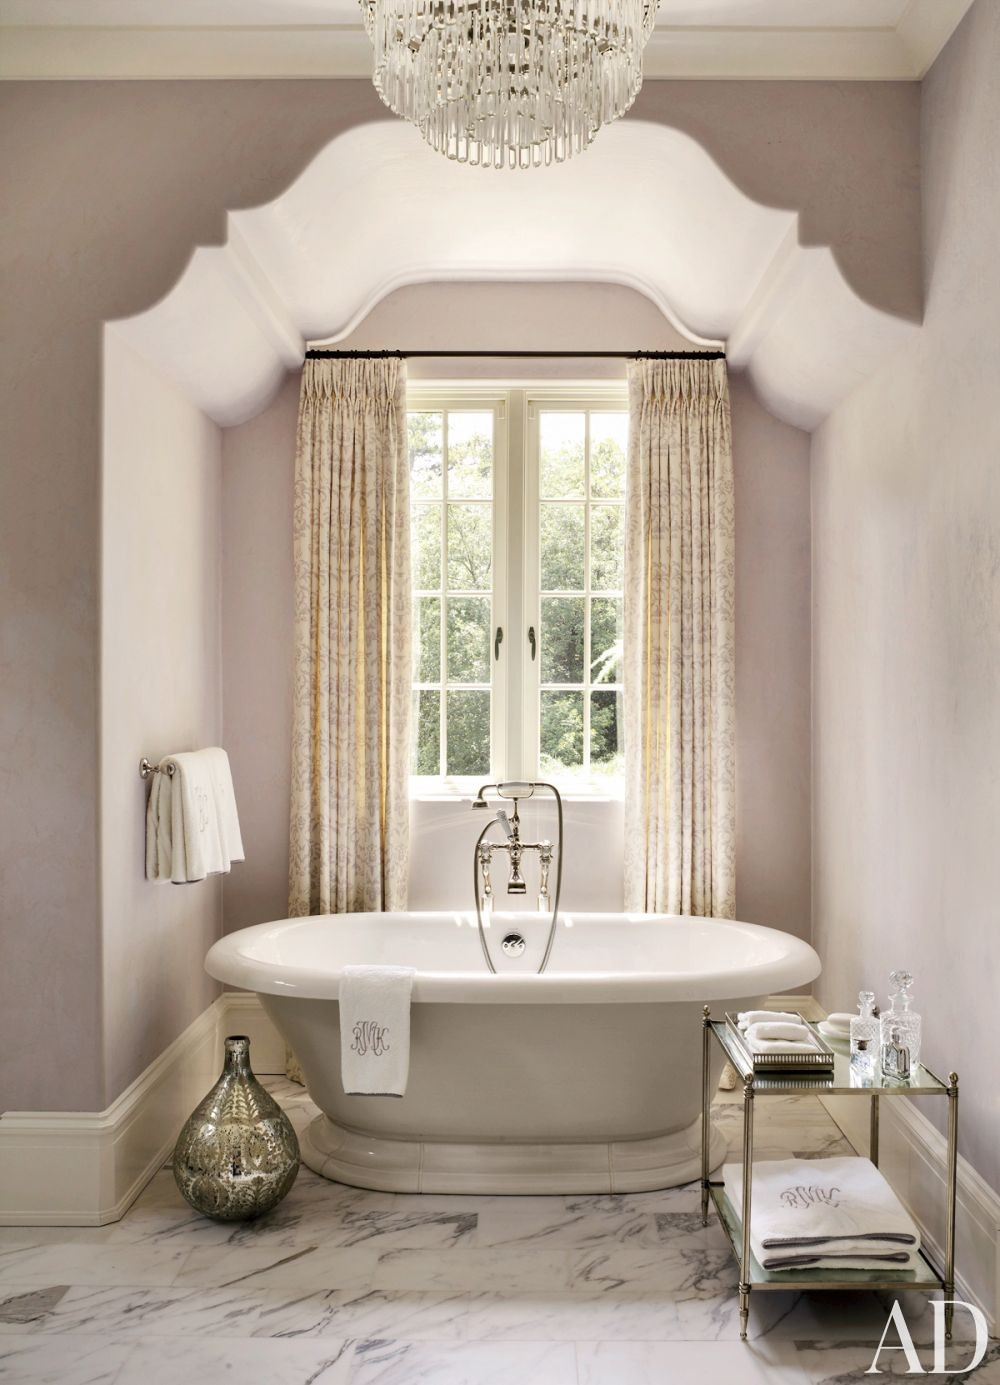 How to keep your bathroom looking new forever shoproomideas for Violet home